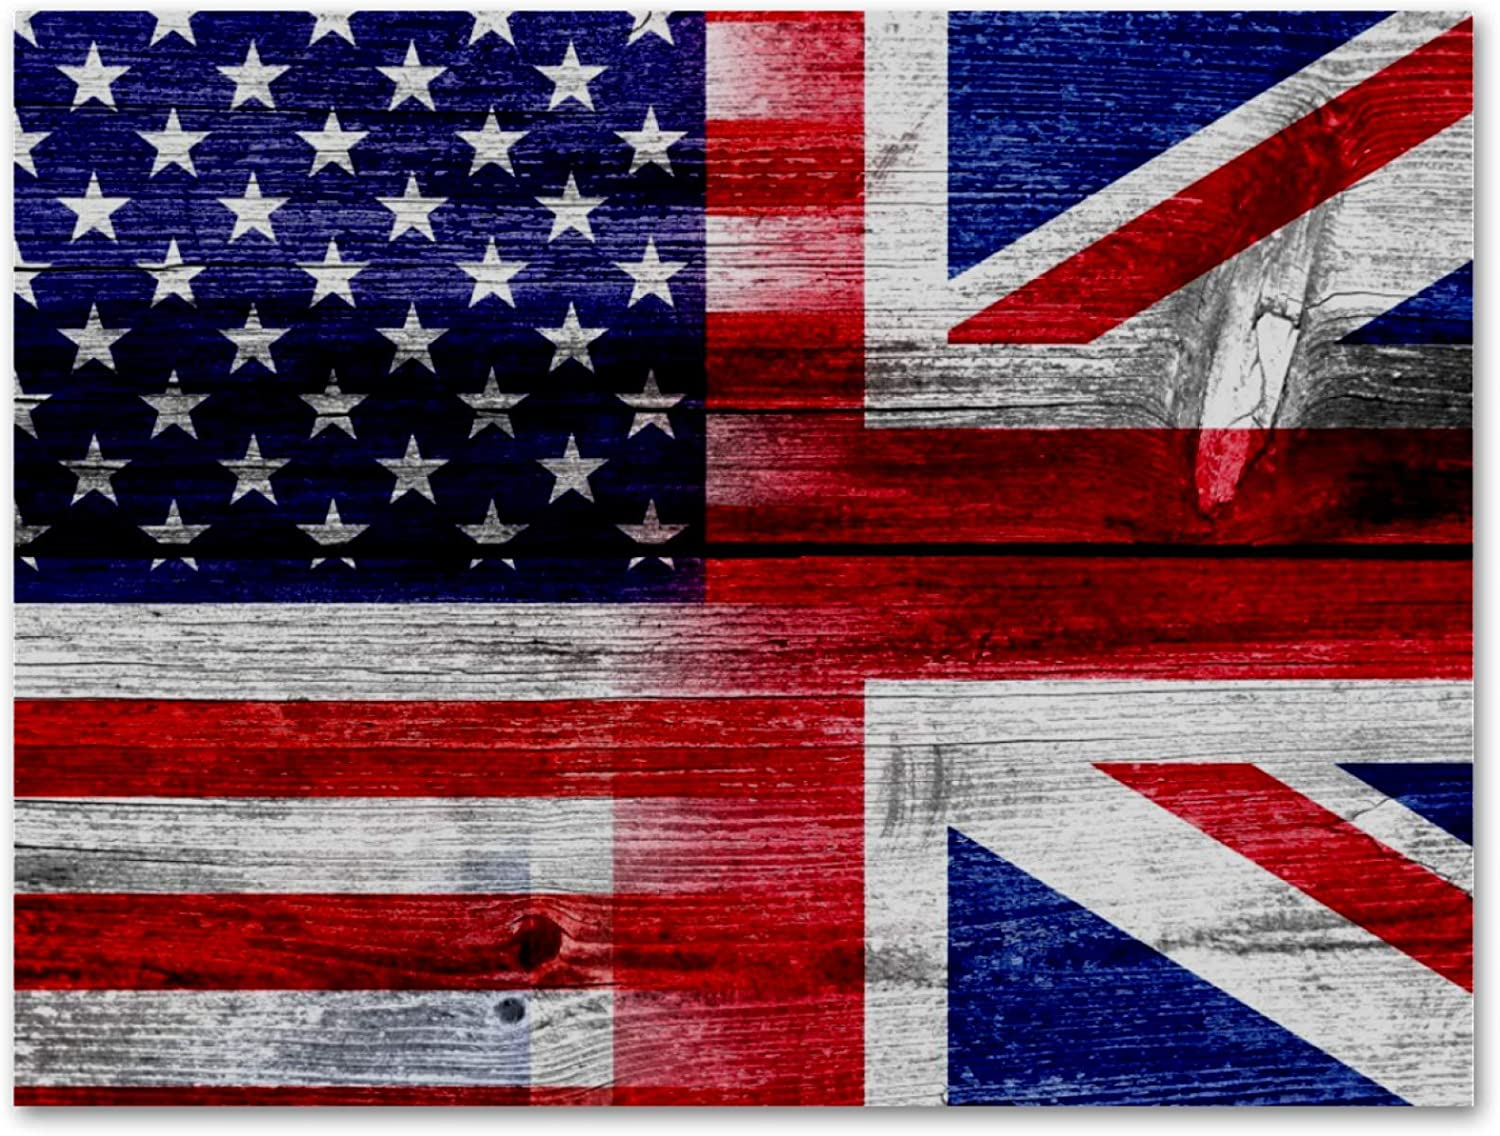 LORVIES American British Flag Oil Painting Printed on Canvas Framed Wall Art Decor Artwork for Home, Living Room Bedroom,Office